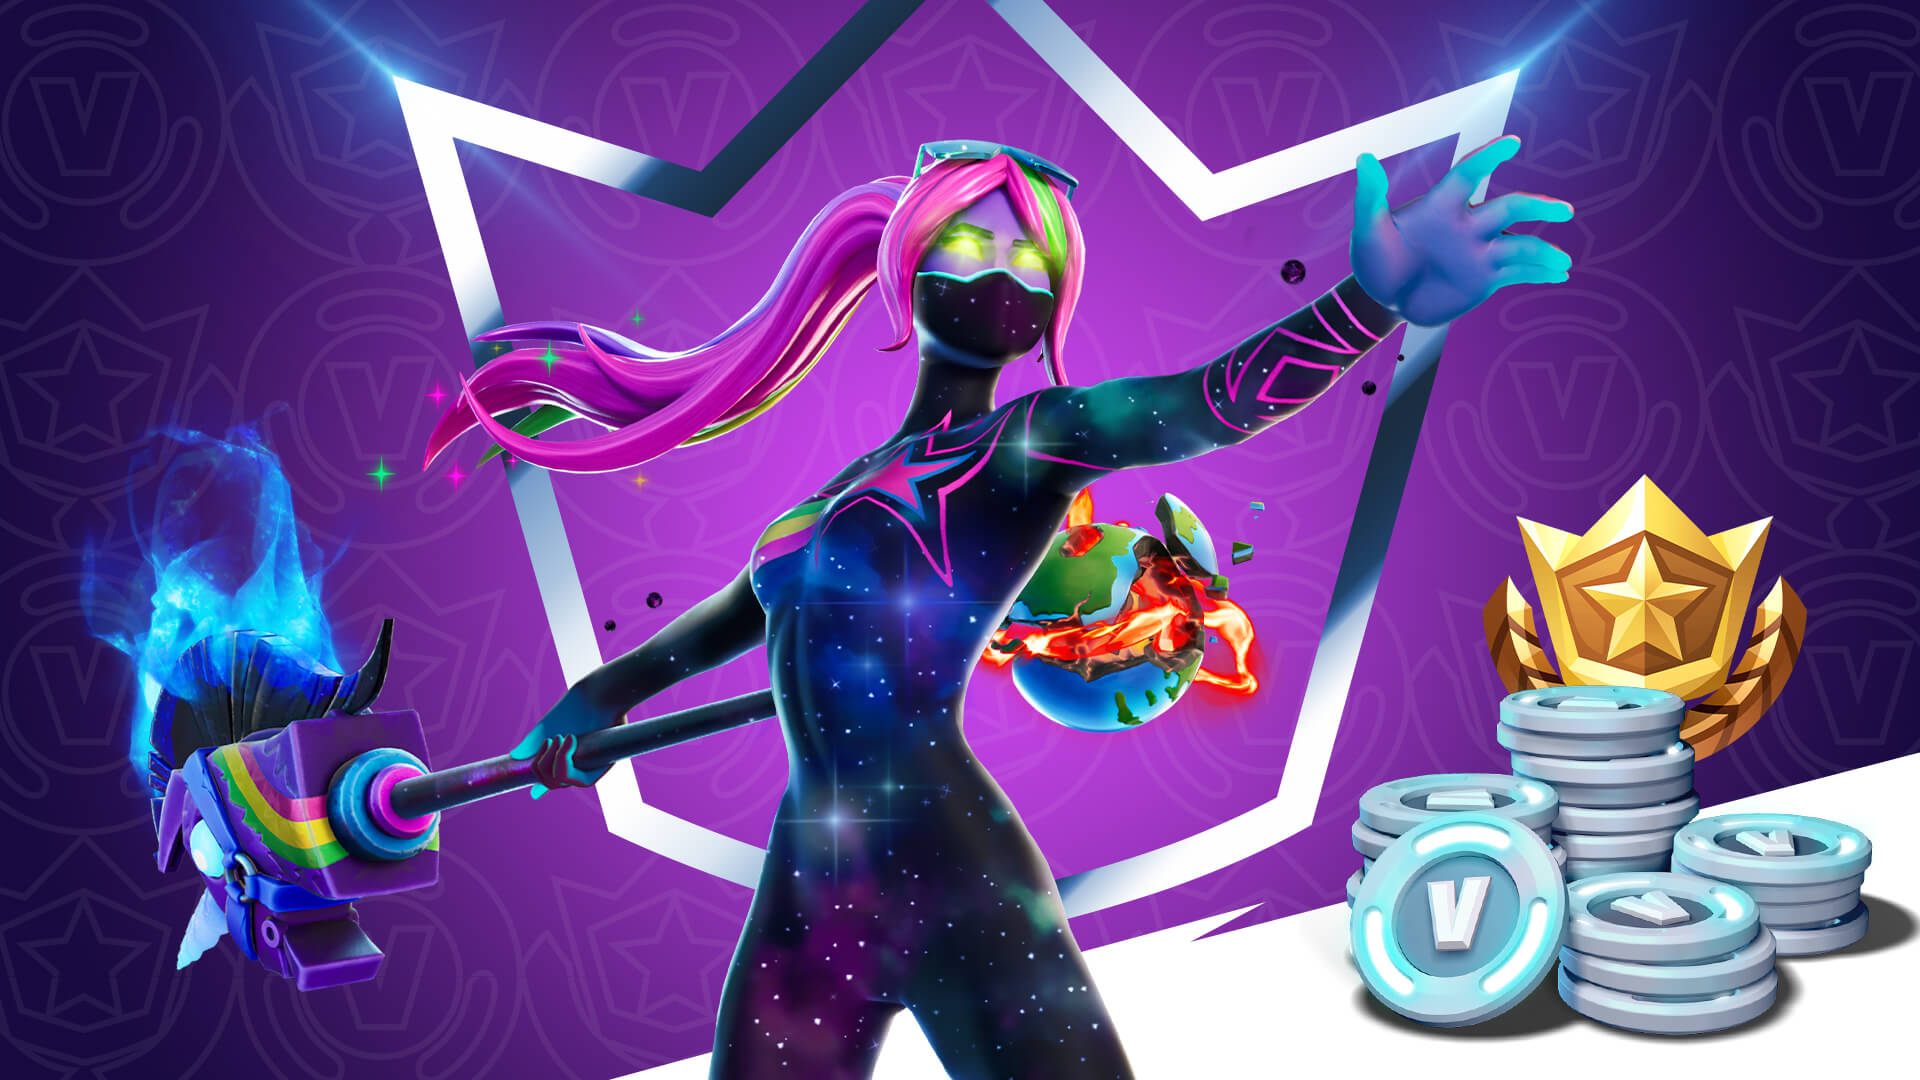 The Fortnite Crew Monthly Subscription Terms And Conditions Game info alpha coders 516 wallpapers 356 mobile walls 3 art. the fortnite crew monthly subscription